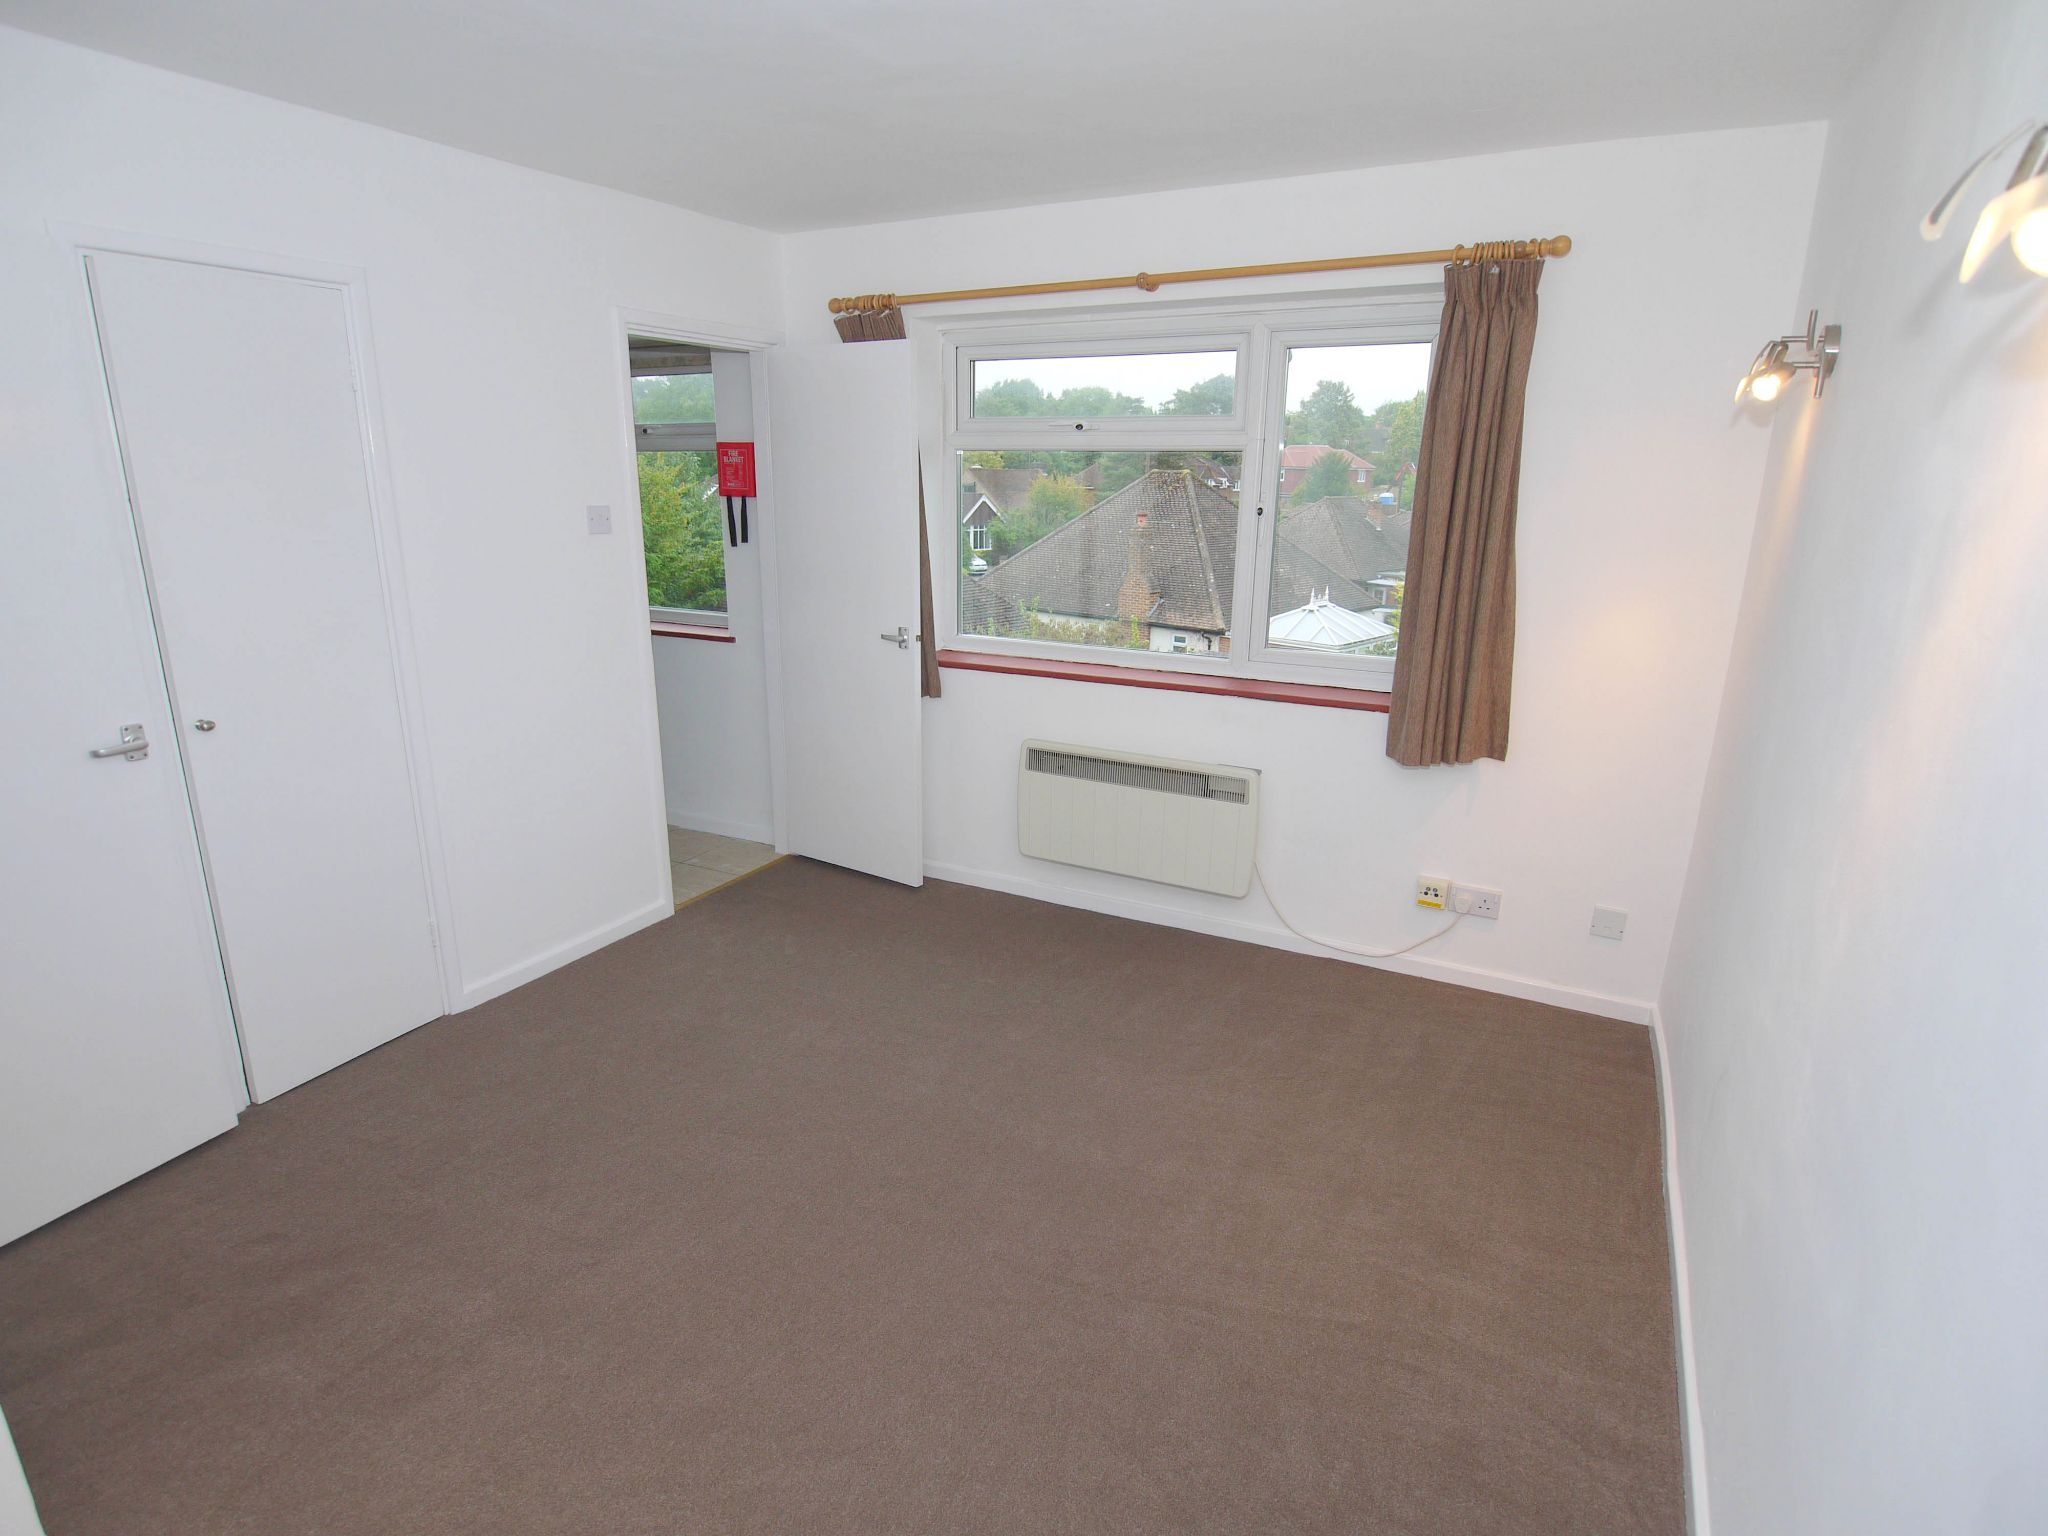 1 bedroom apartment flat/apartment Sale Agreed in Sevenoaks - Photograph 4